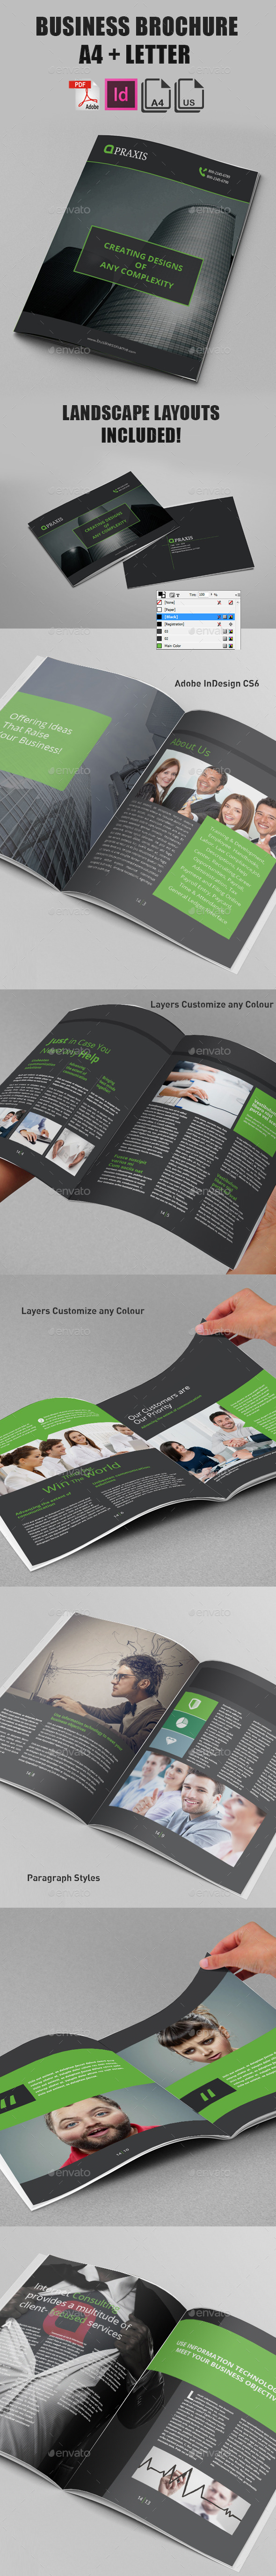 GraphicRiver Corporate Business Brochure 14 pages 9315756